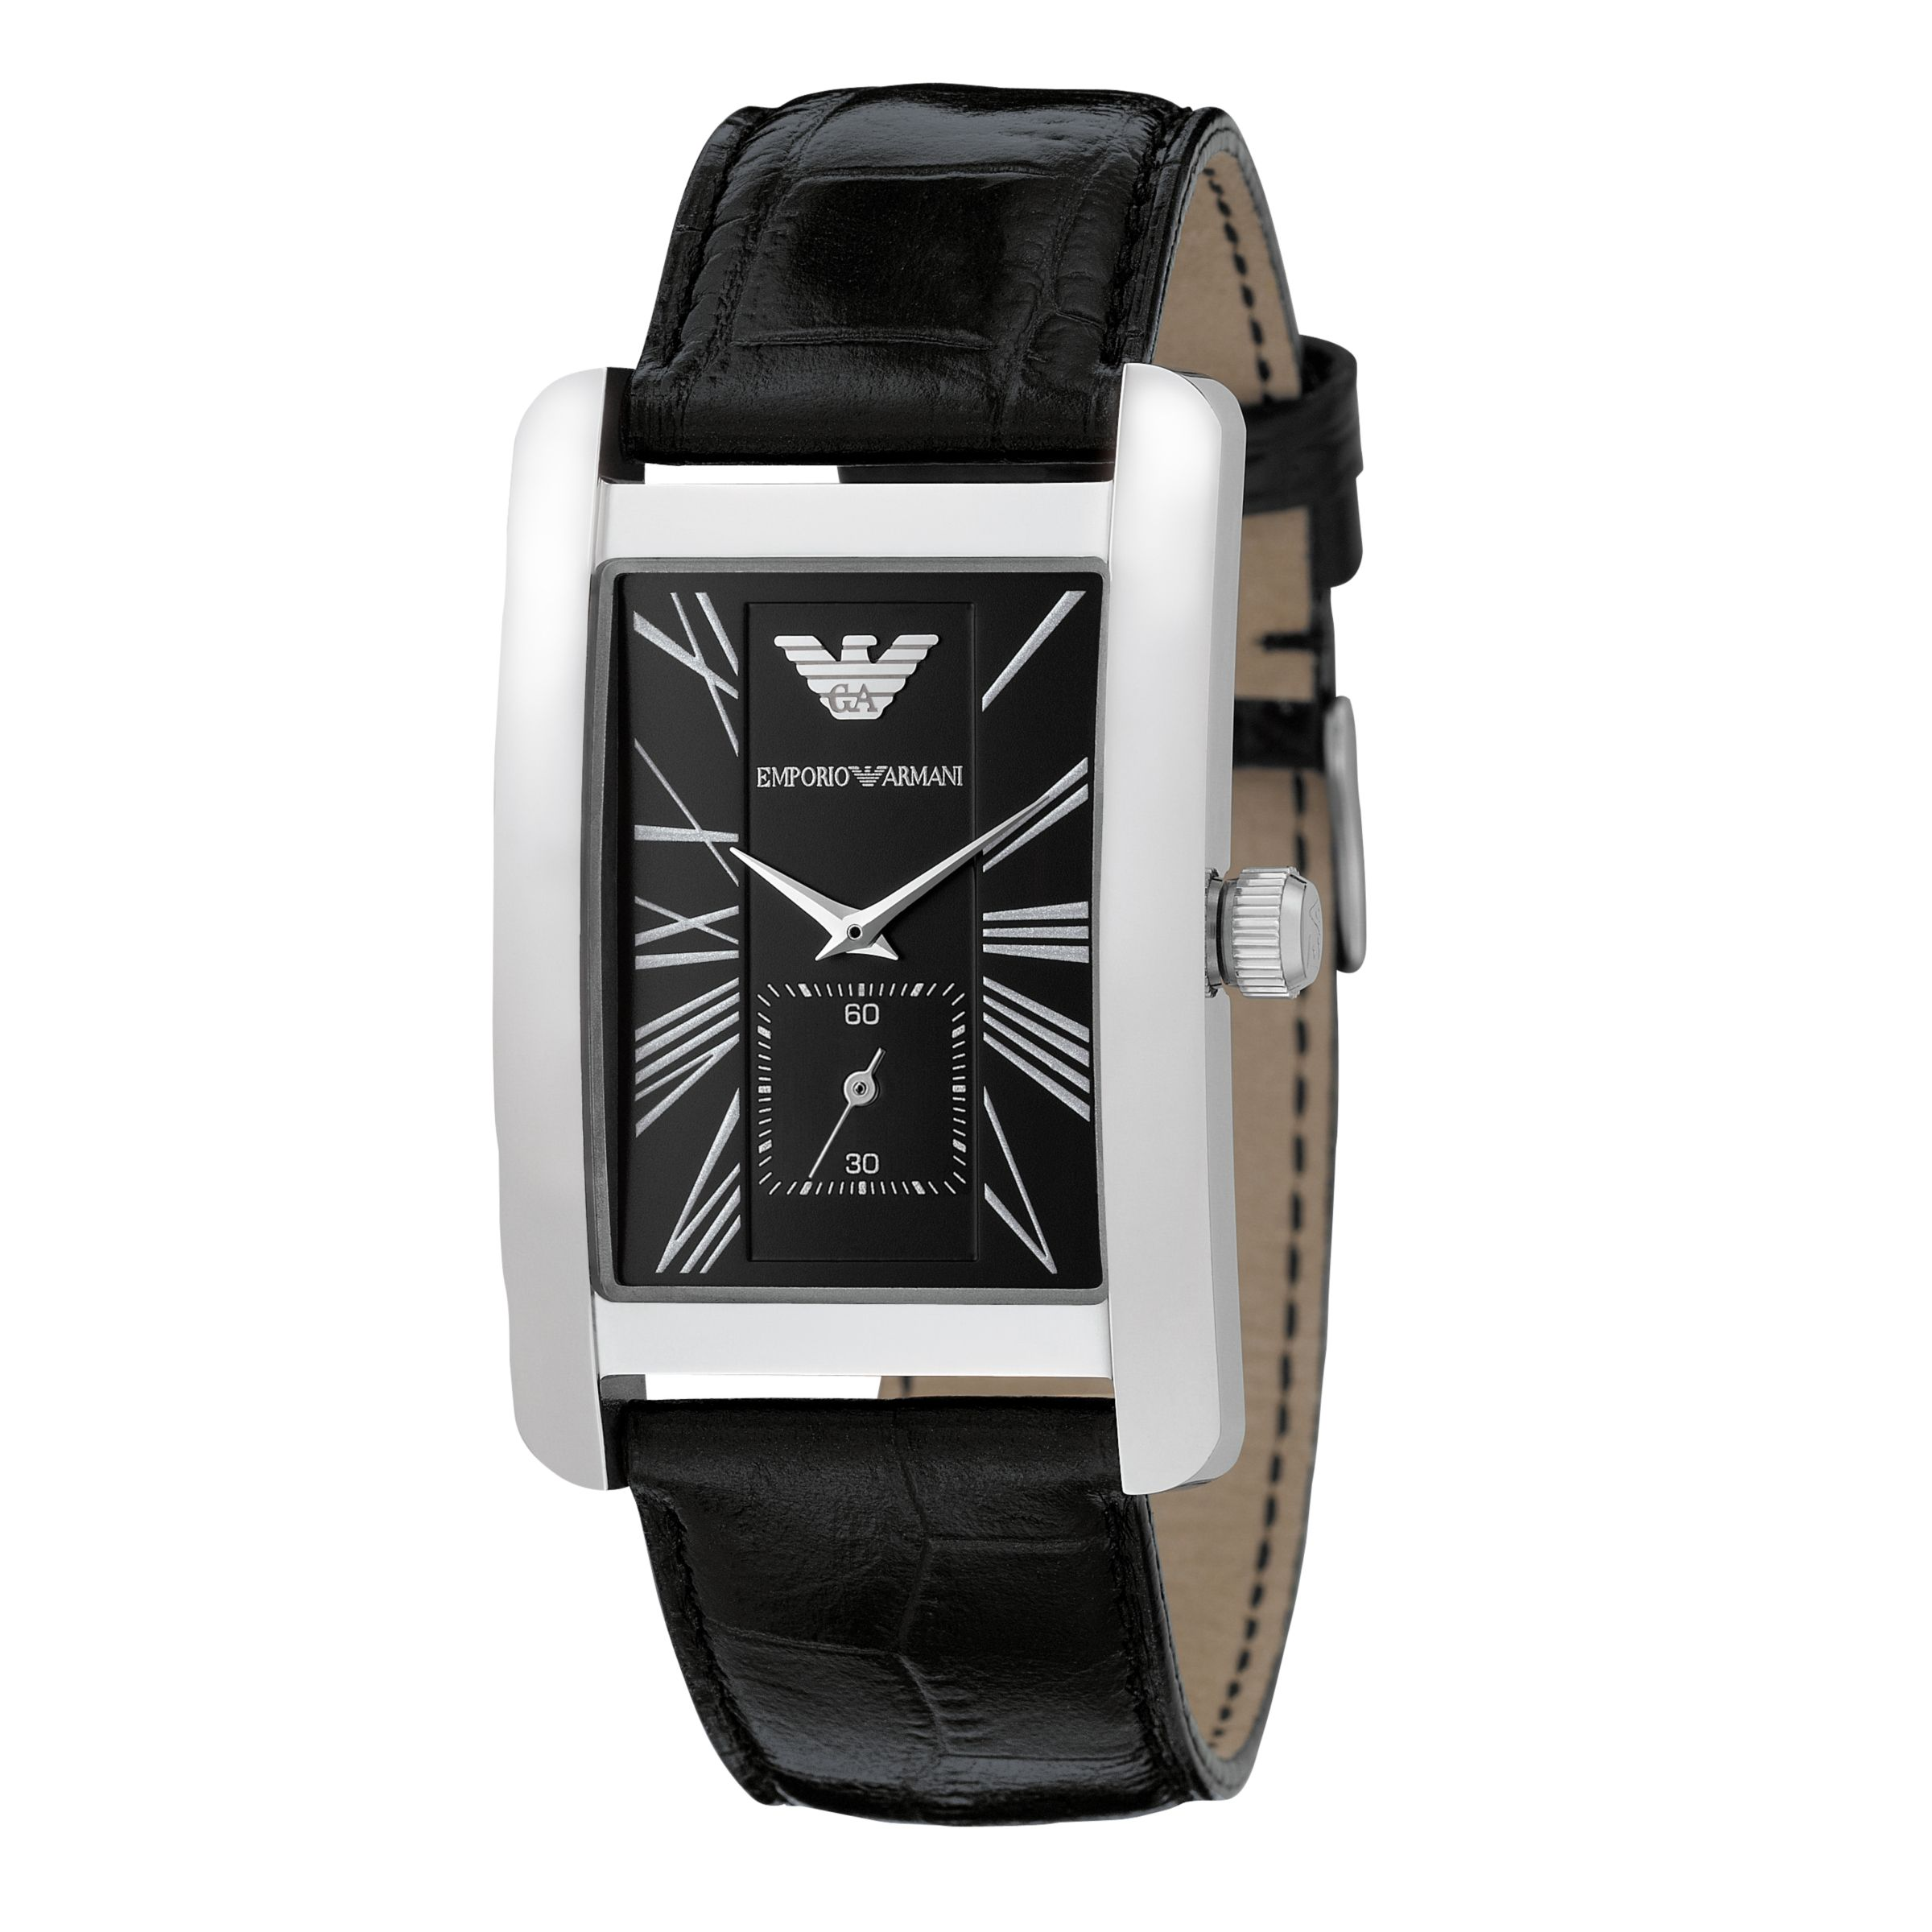 Emporio Armani AR0143 Classic Men's Watch